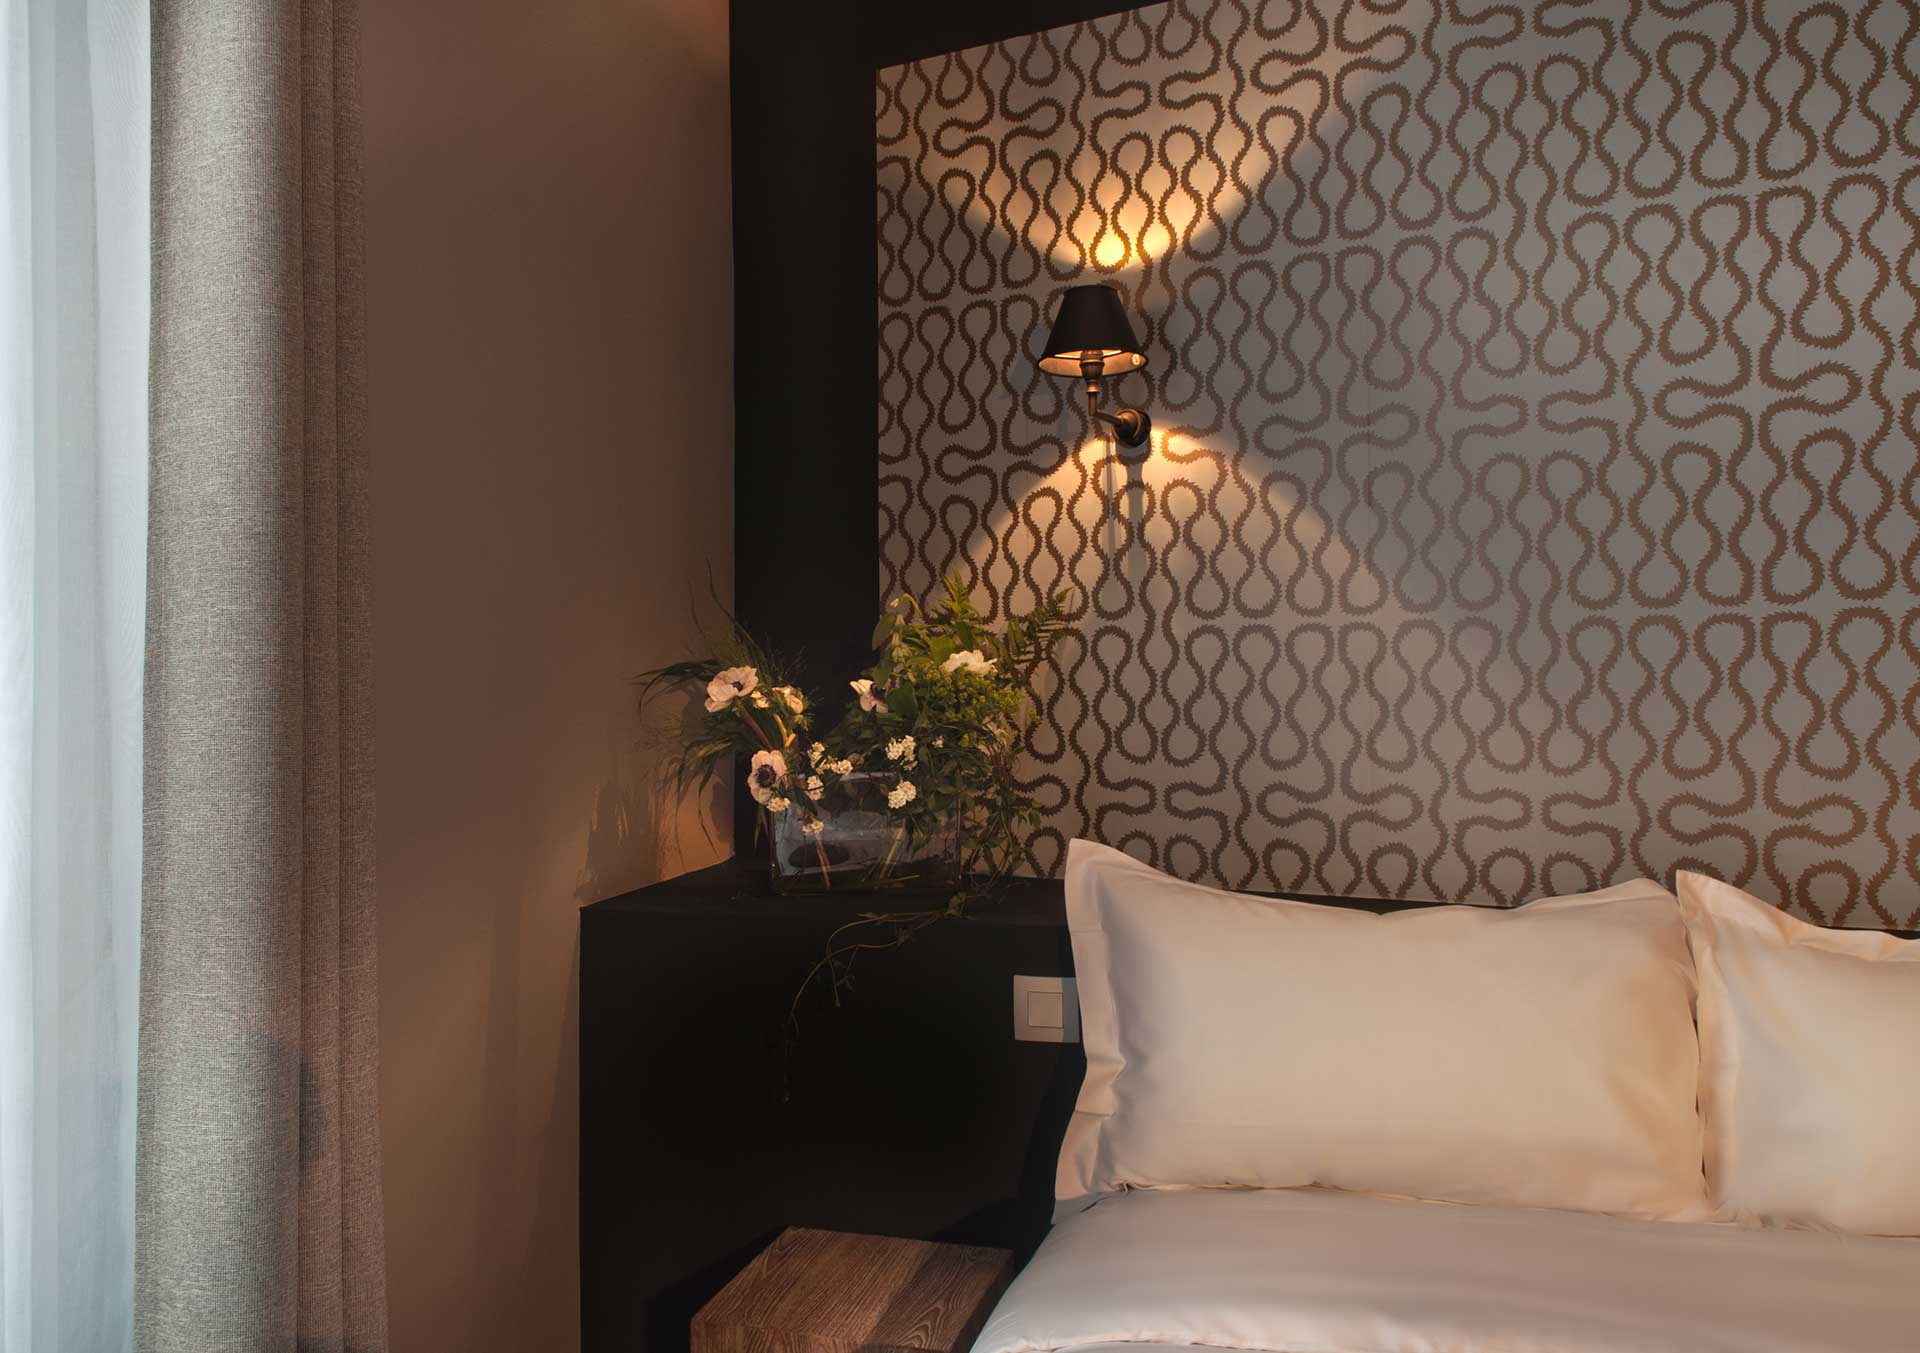 Chambre h tel les terres blanches chatou - Les chambres blanches ...